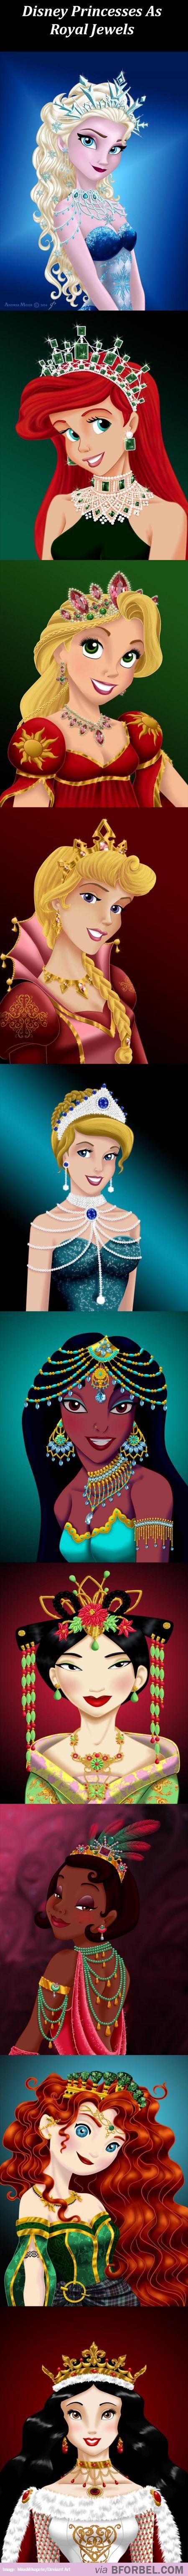 Disney Princesses in their native royal jewellery.